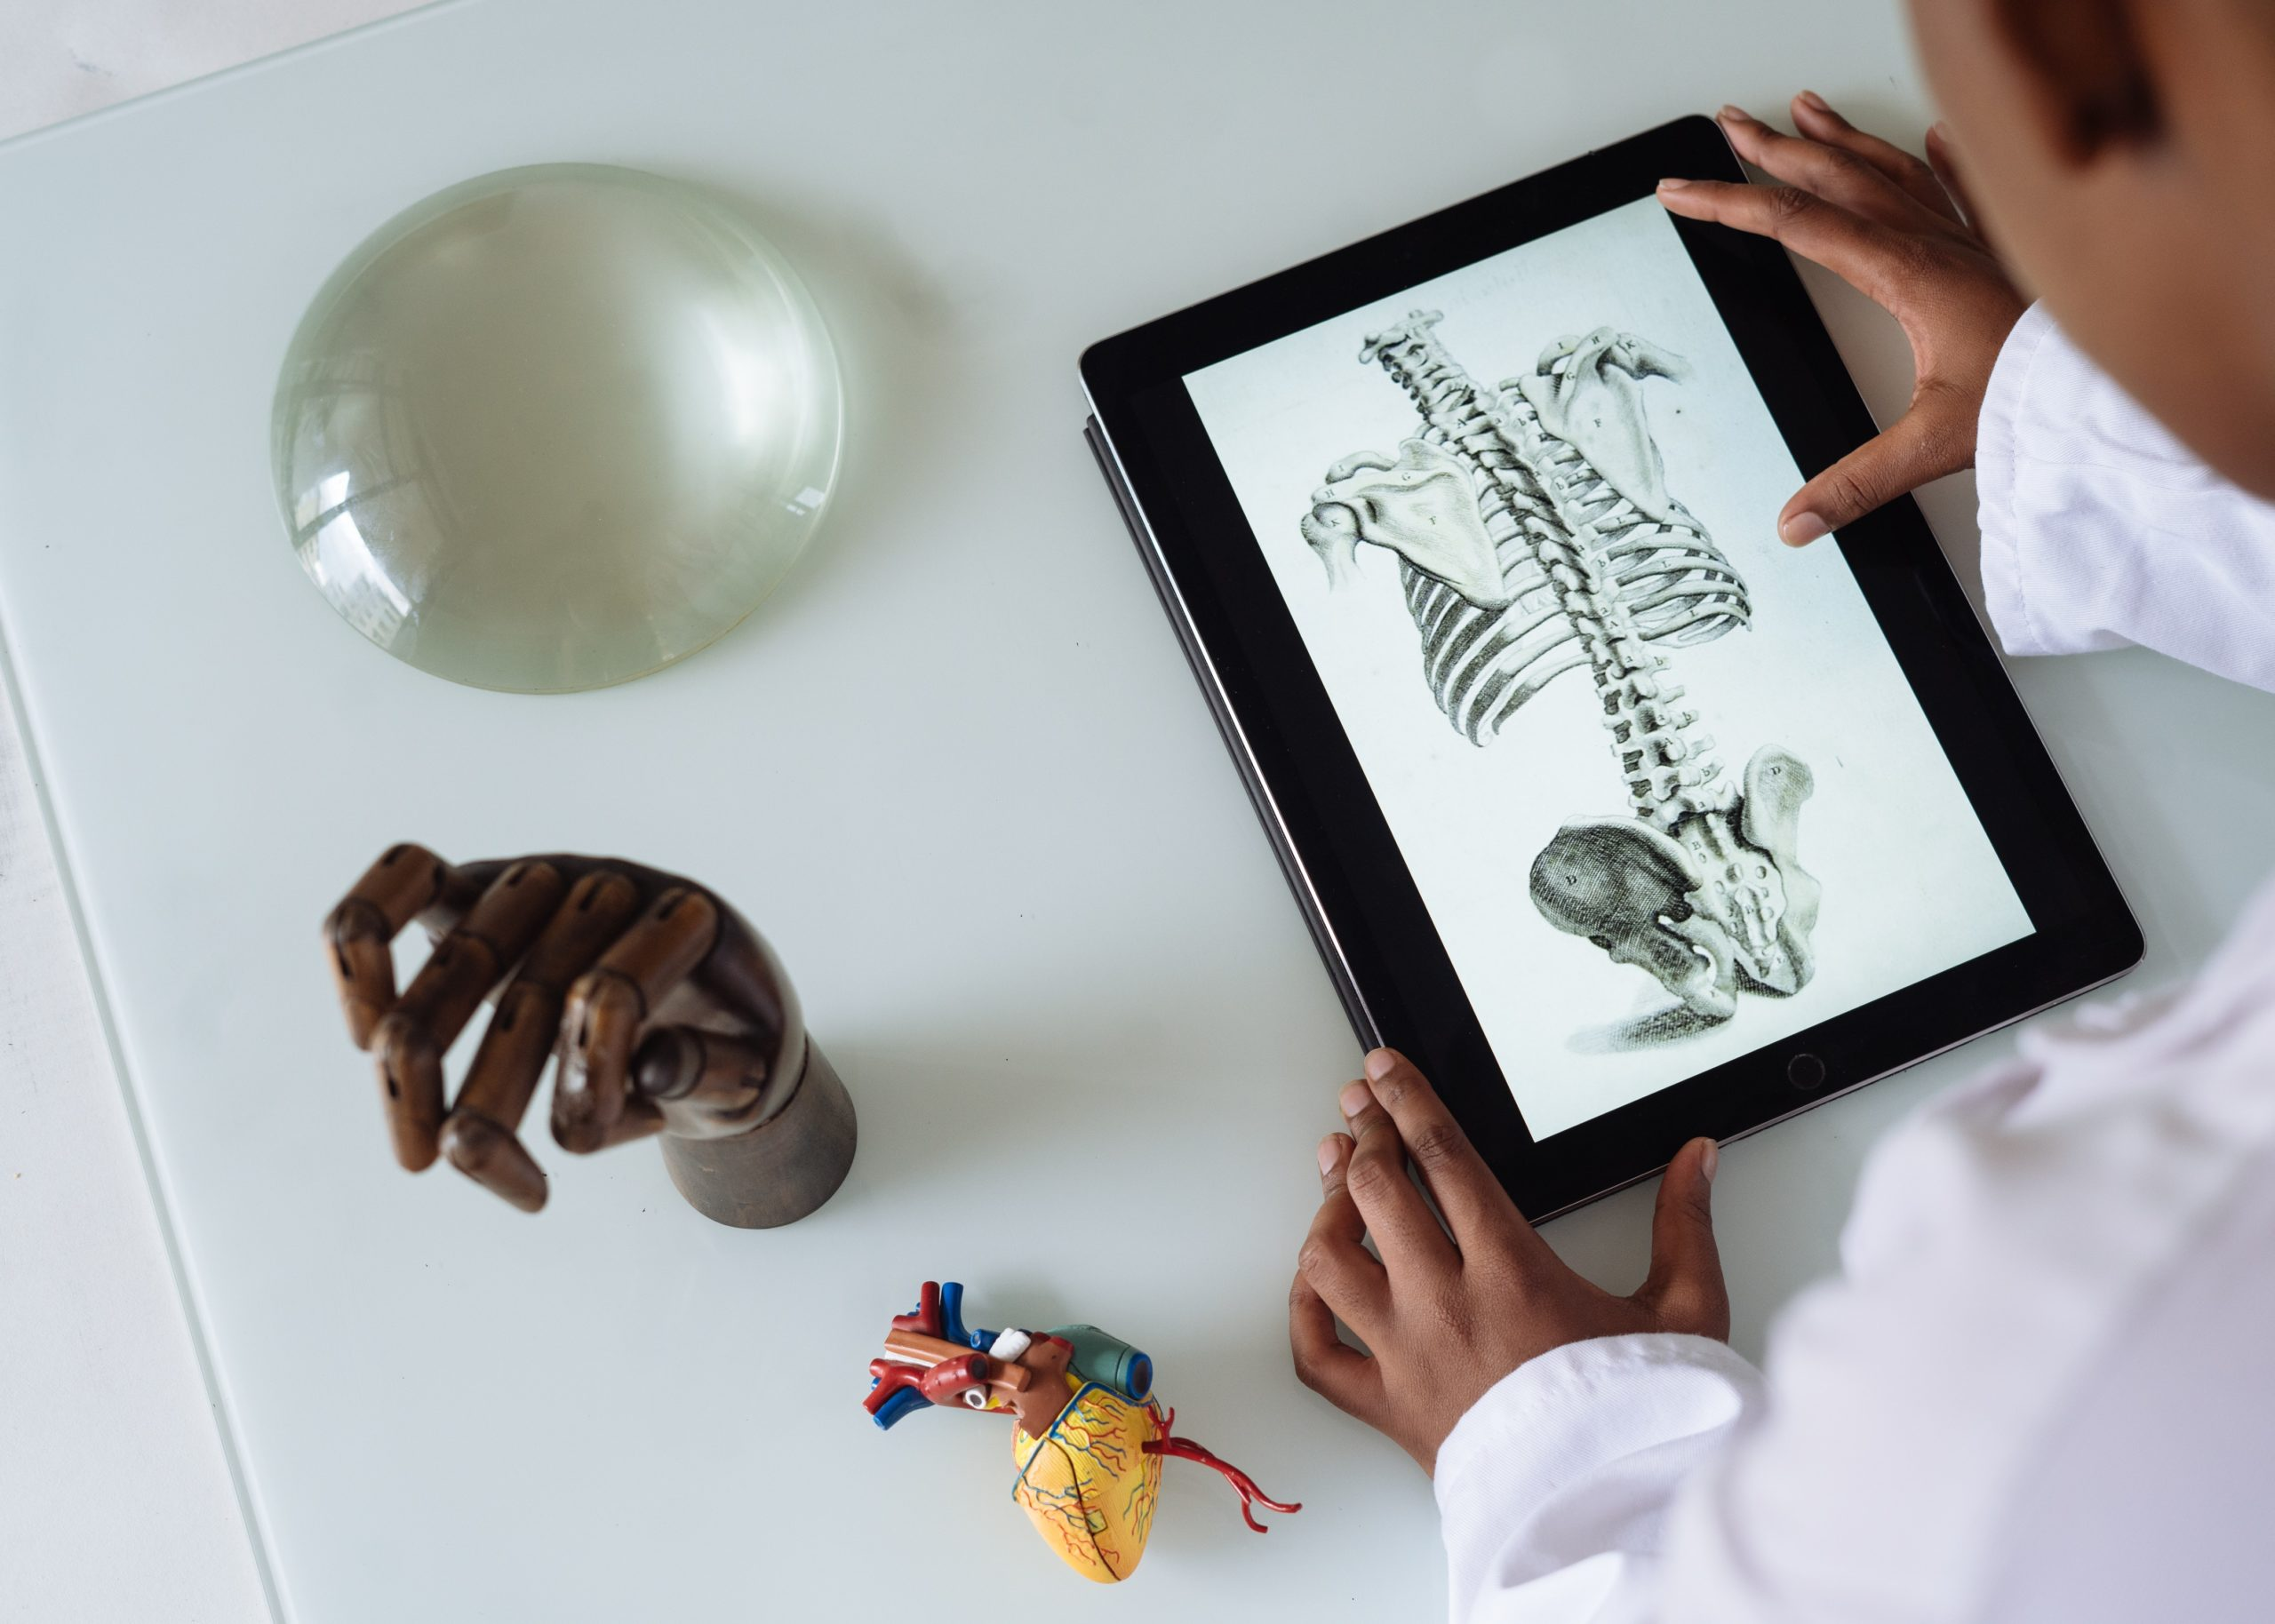 A person's hands holding a tablet showing a medical illustration of a skeleton beside a model hand